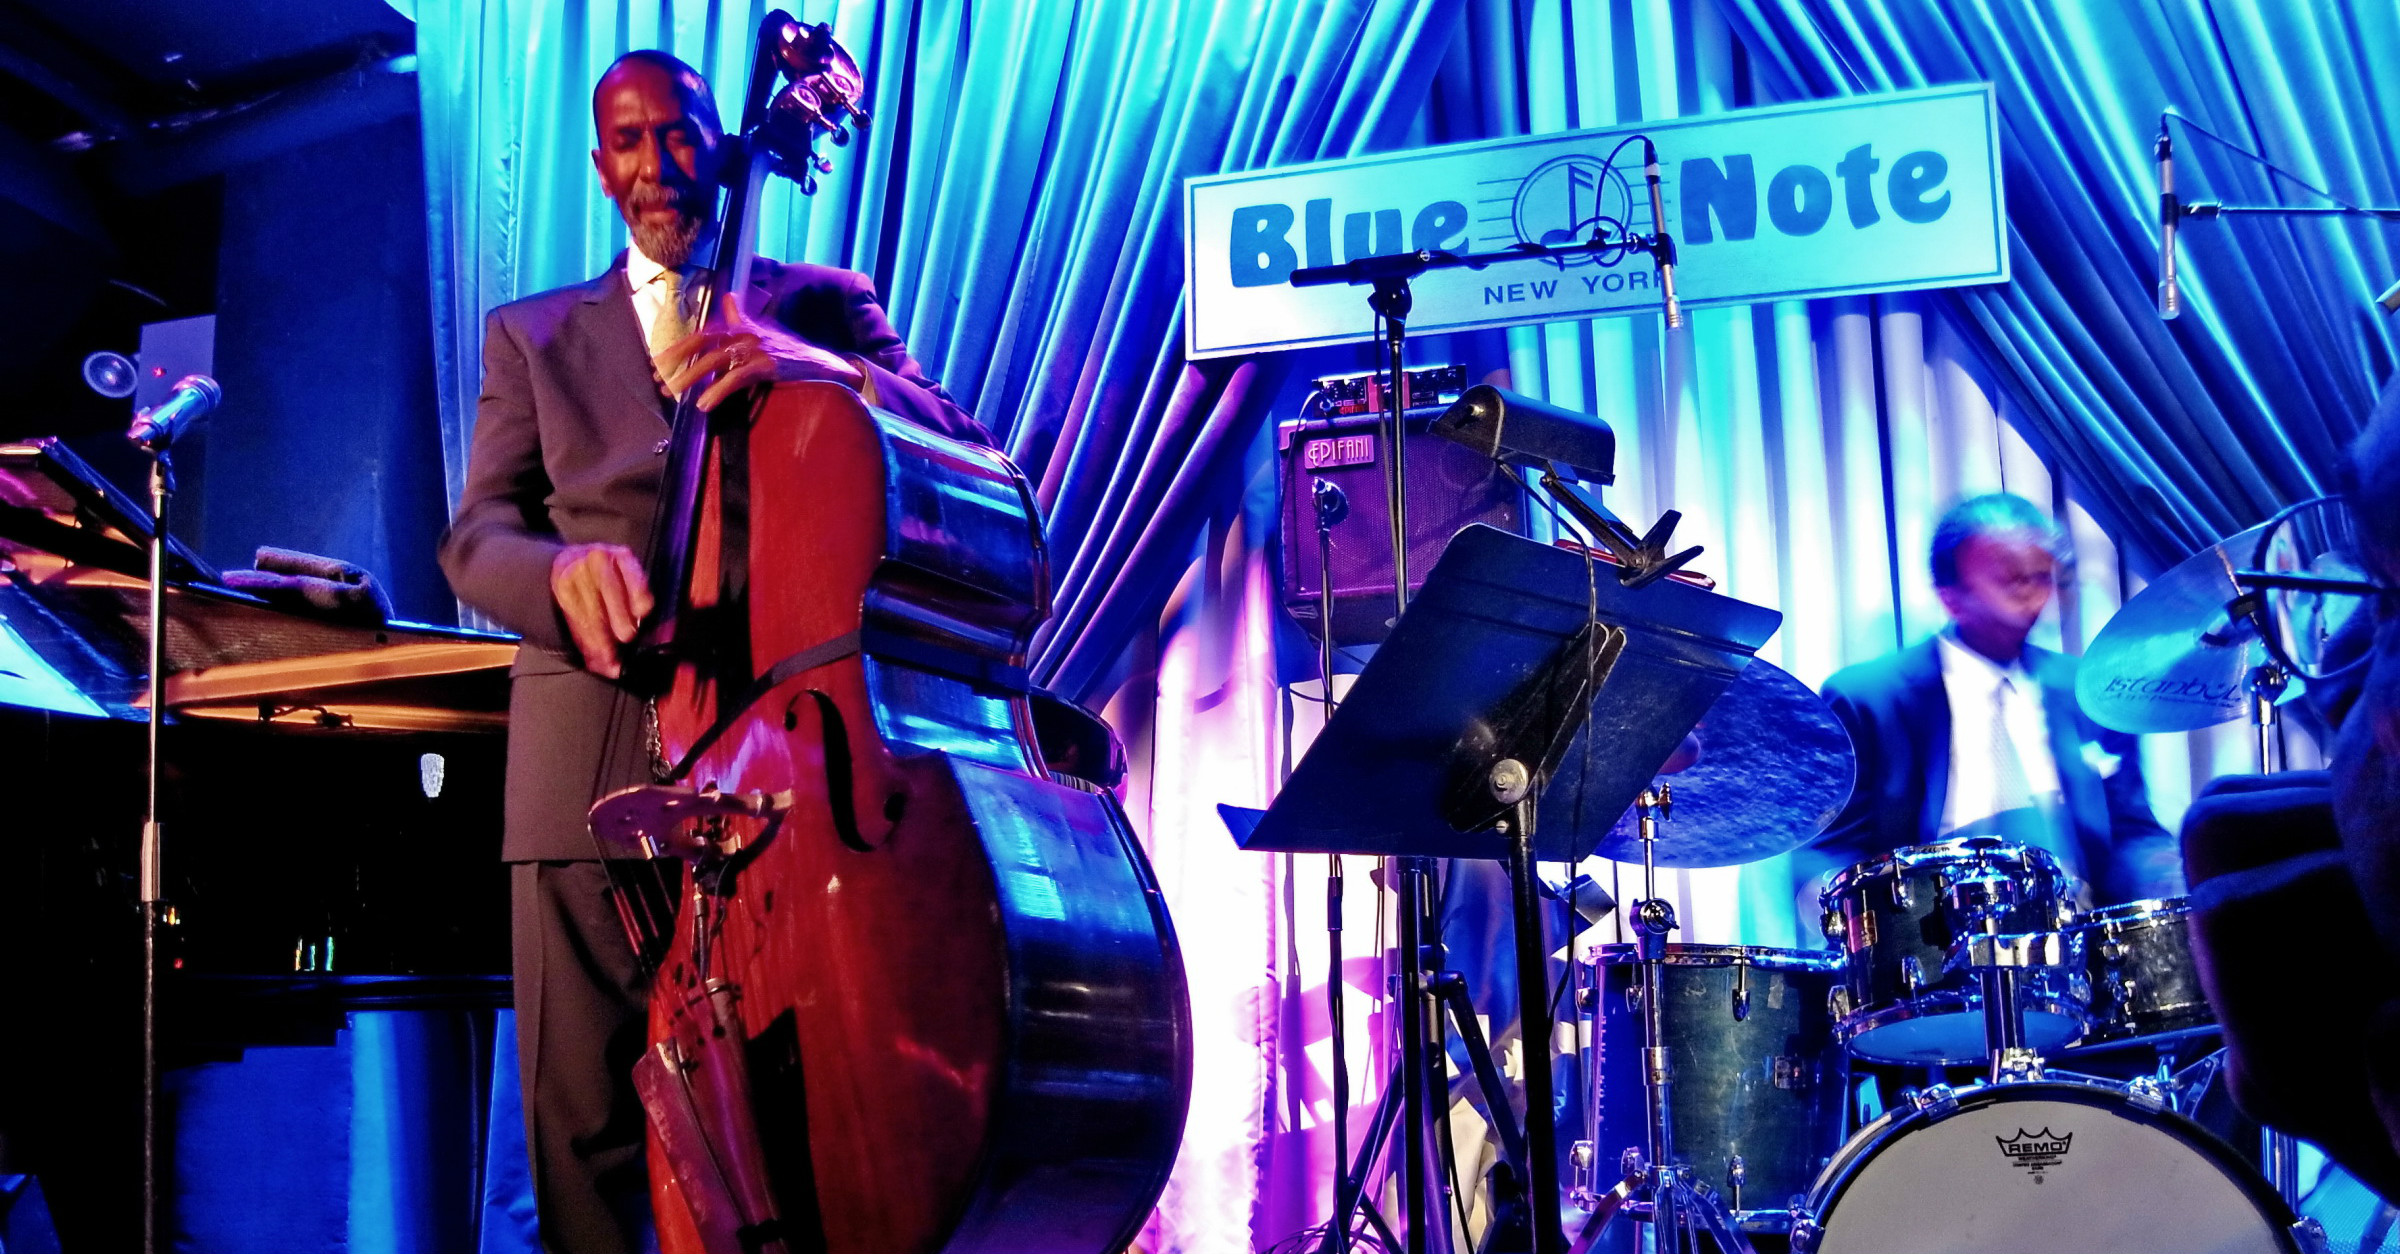 Blues and Jazz in New York City This Week - March 31-April 7